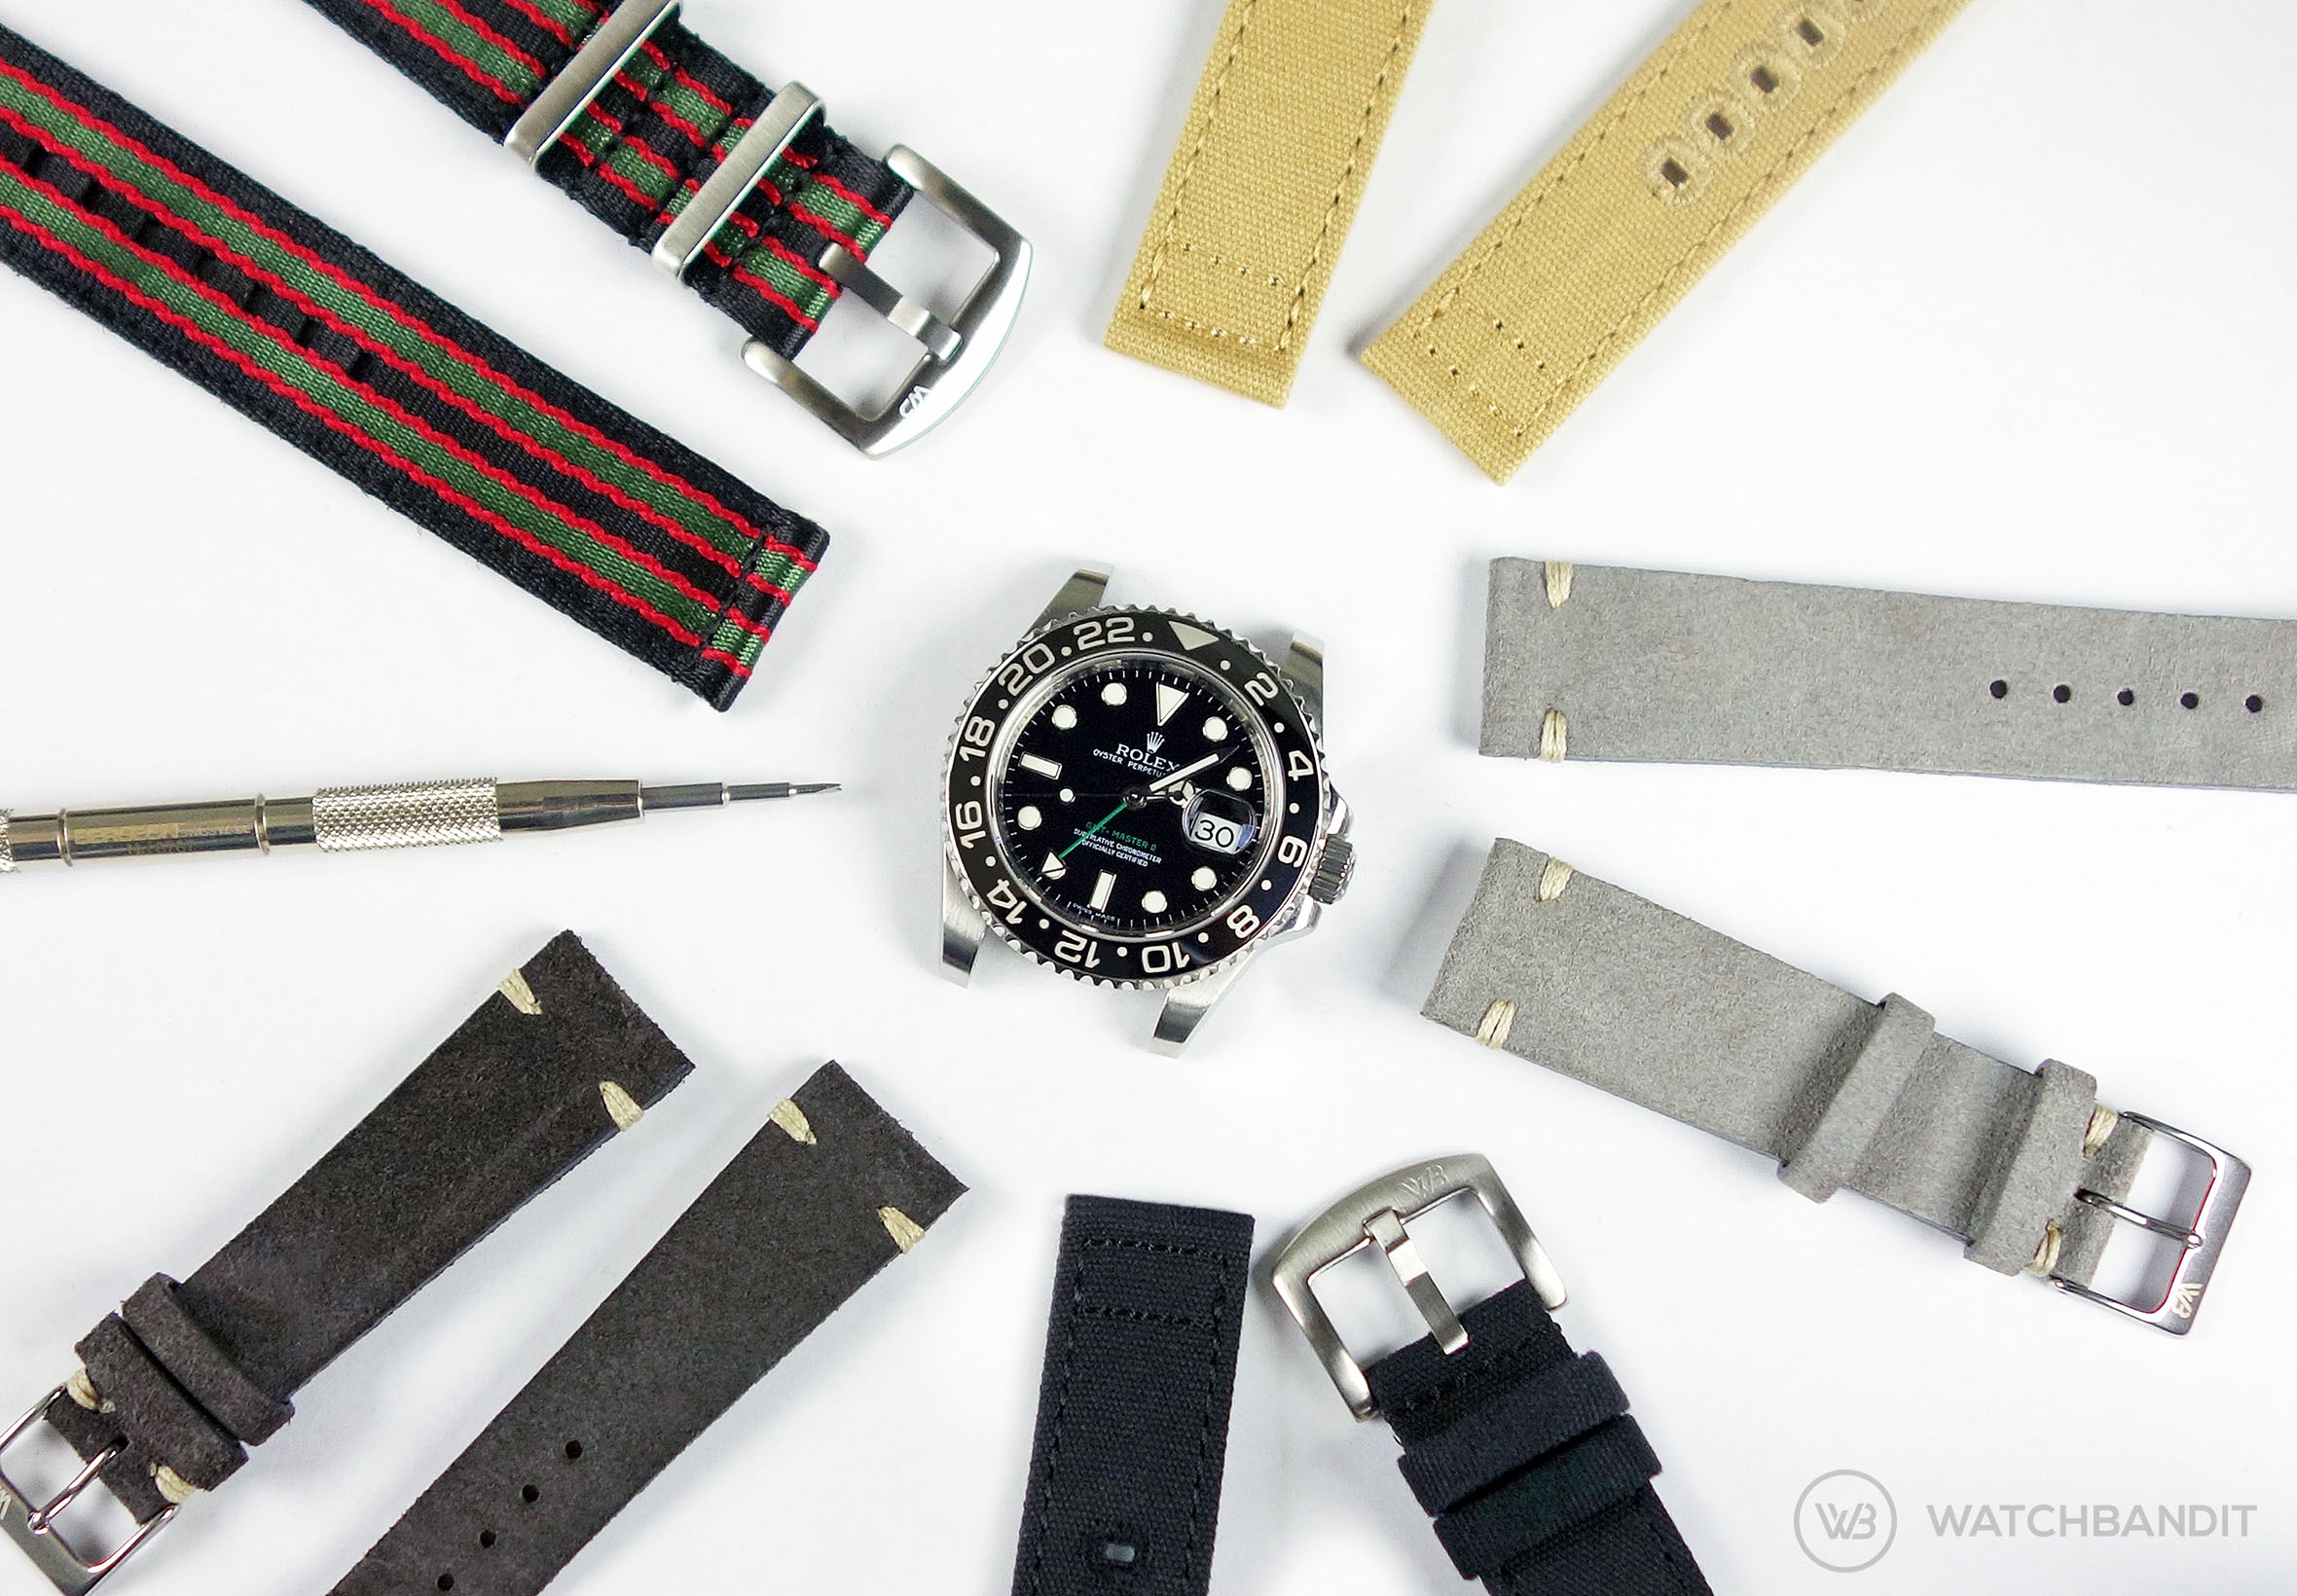 Rolex GMT Master II Strap Collection WatchBandit Original